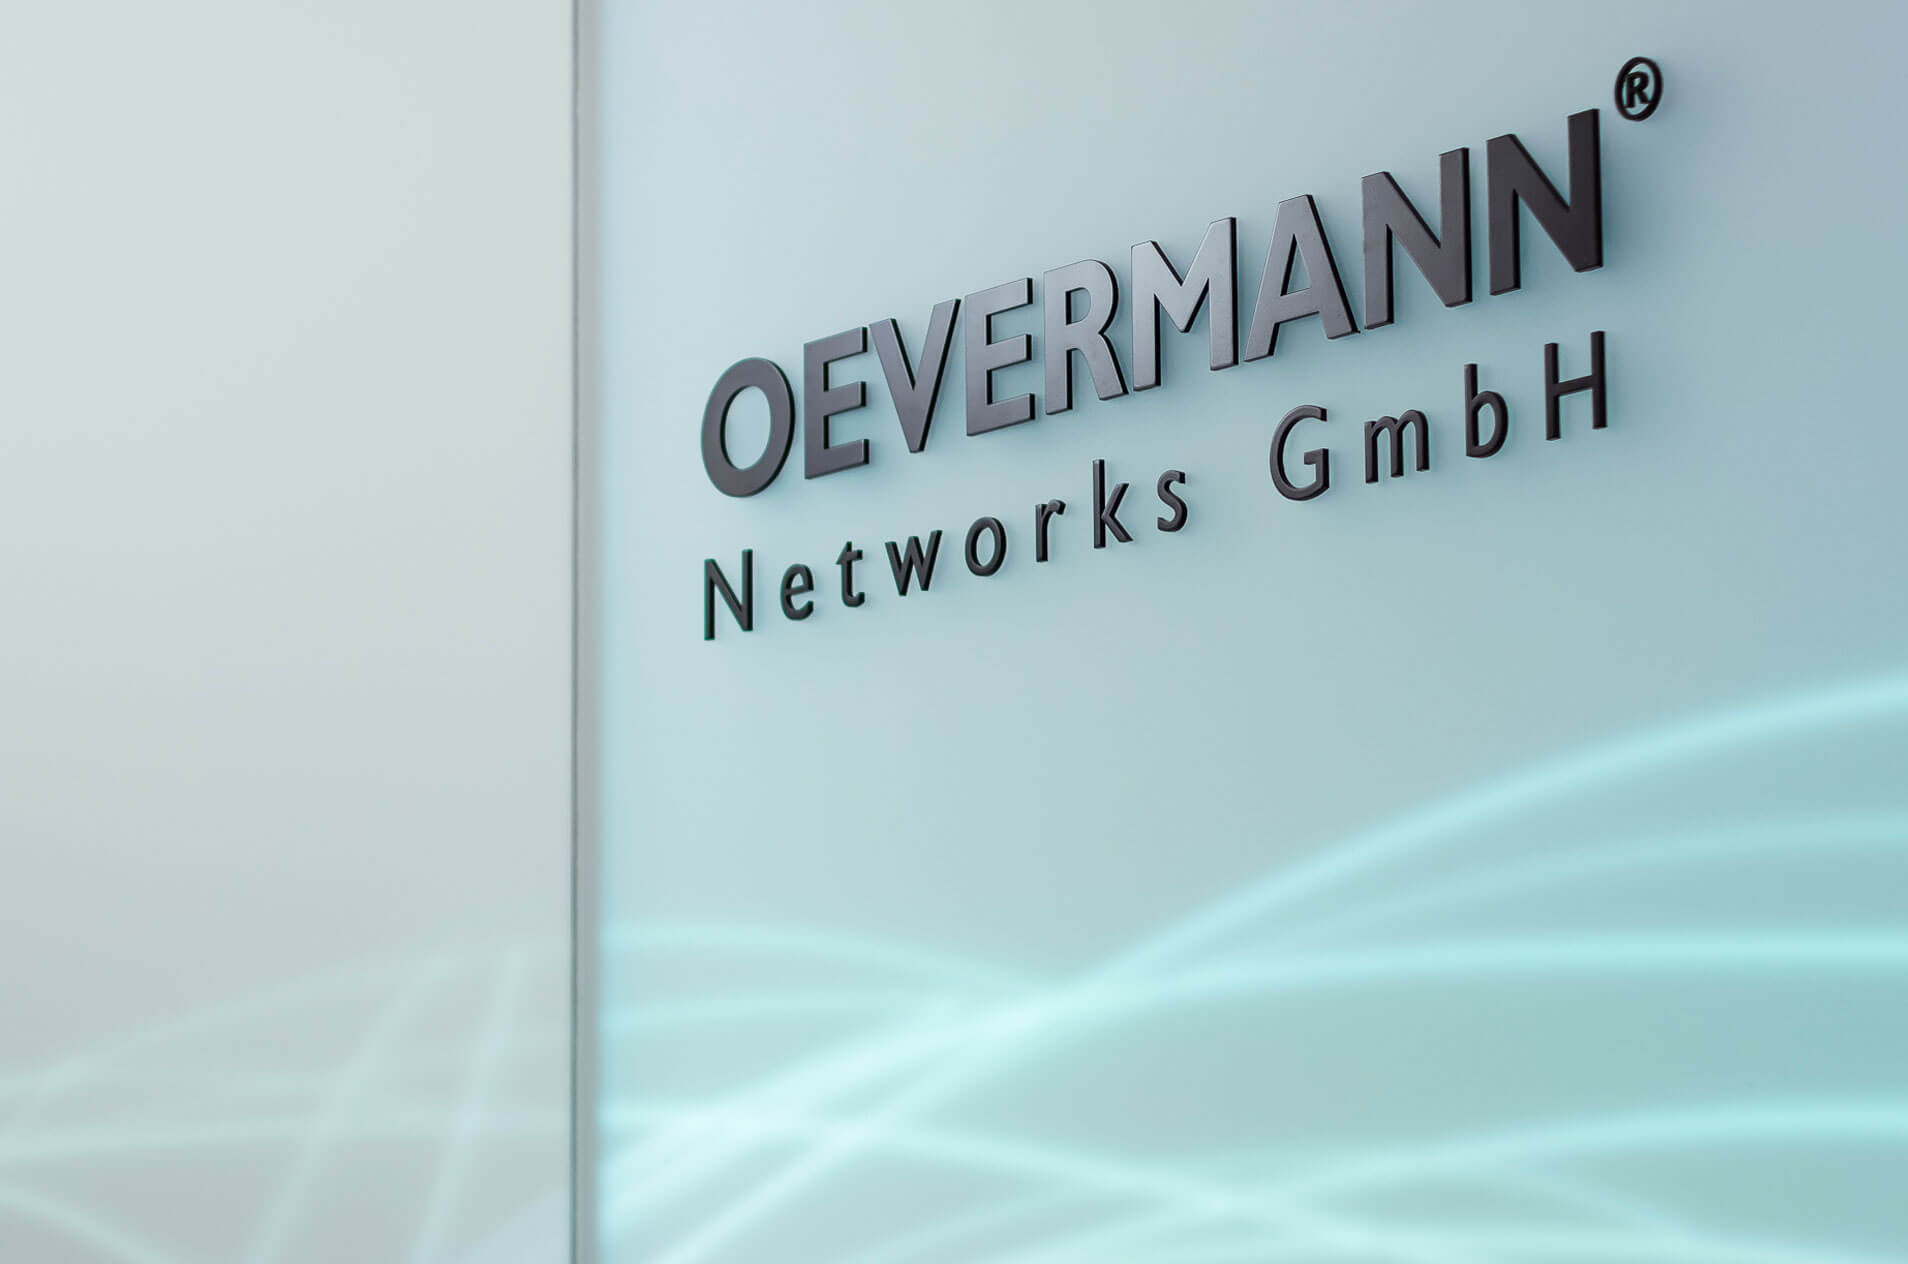 Full Service Internetagentur in Köln: OEVERMANN Networks GmbH